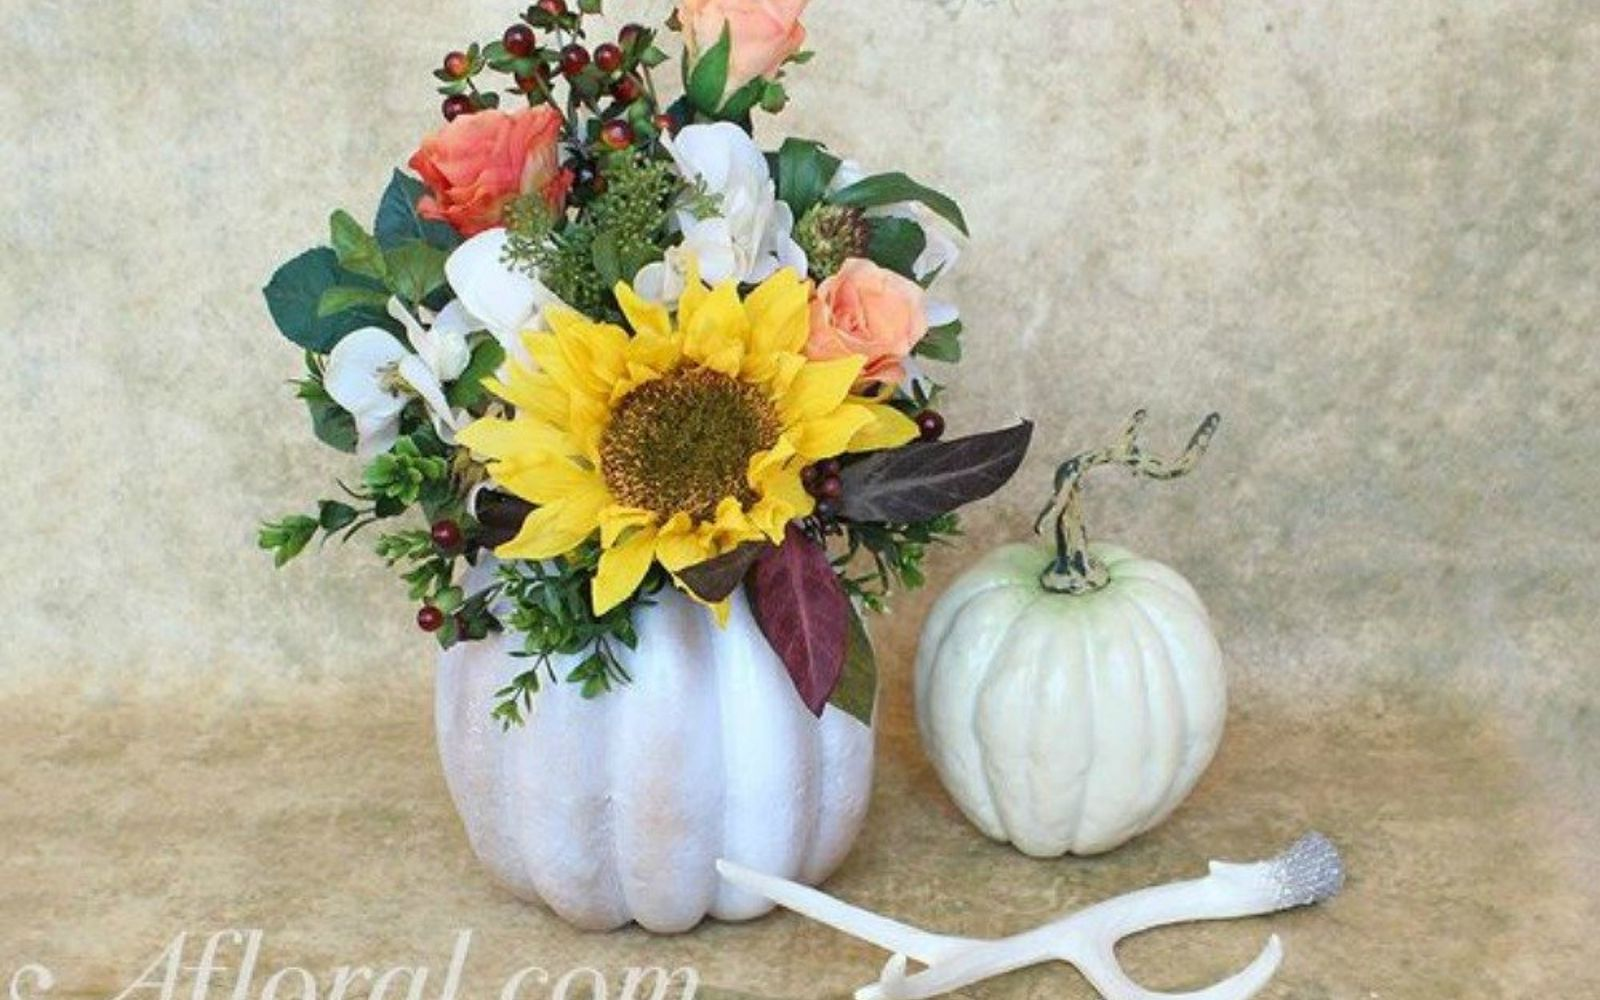 s why everyone is buying artificial flowers for the holidays, gardening, Or really in any pumpkin